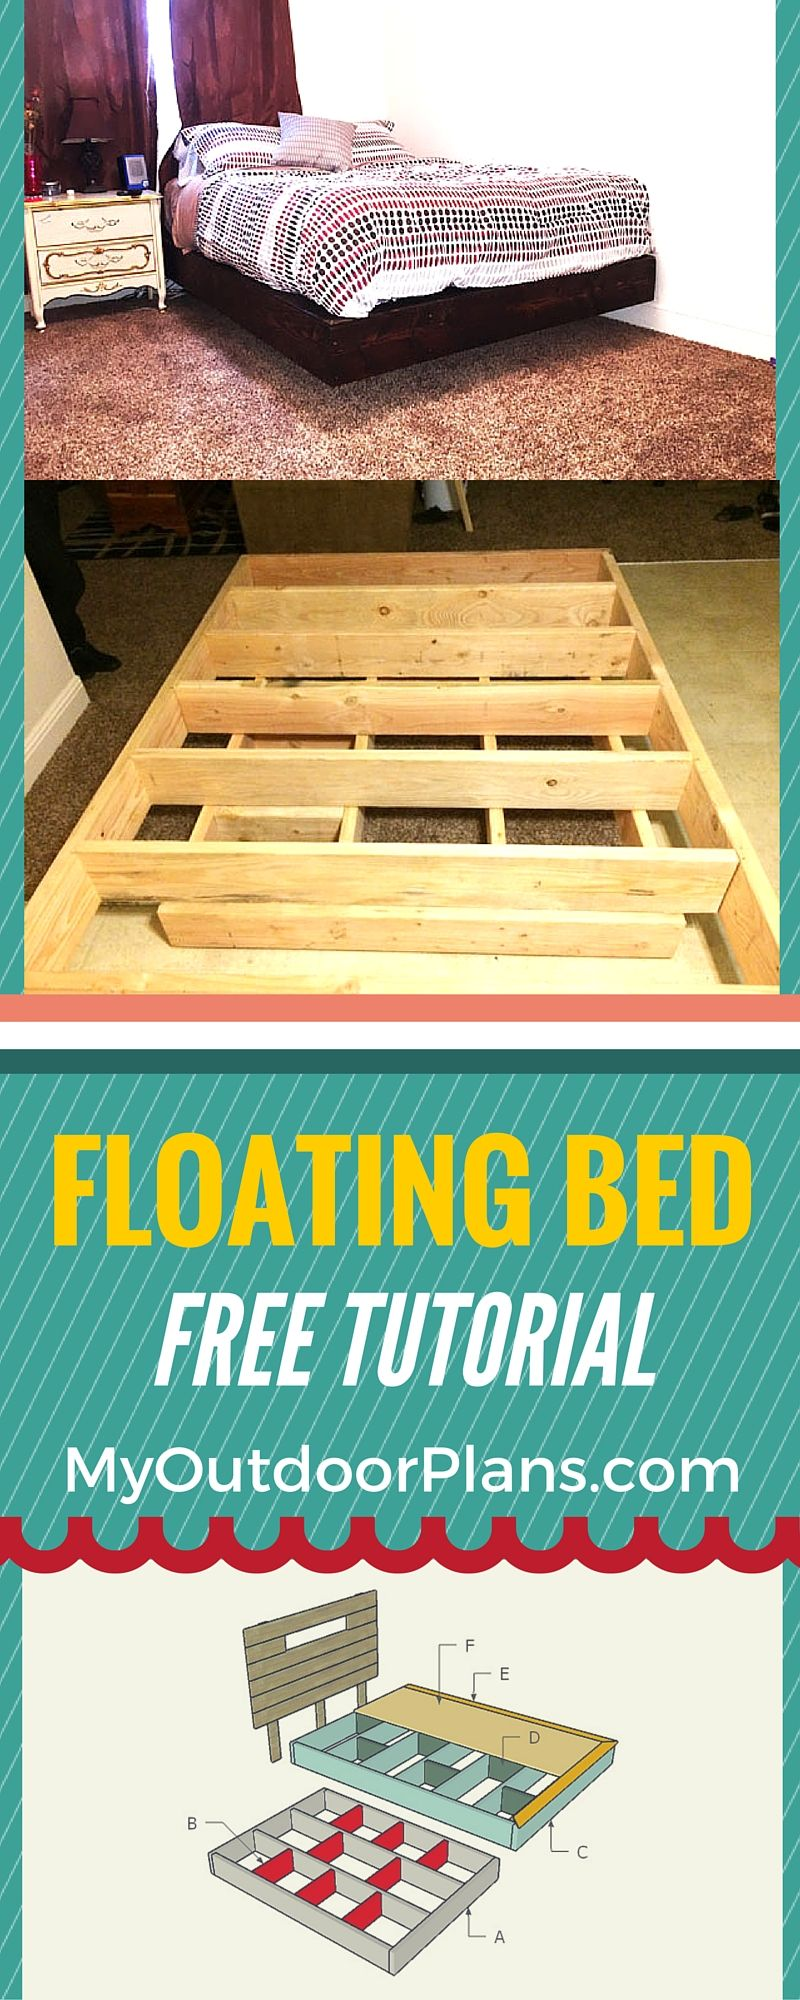 Floating Bed Frame Plans Myoutdoorplans Free Woodworking Plans And Projects Diy Shed Wooden Playhouse P Floating Bed Floating Bed Frame Floating Bed Diy